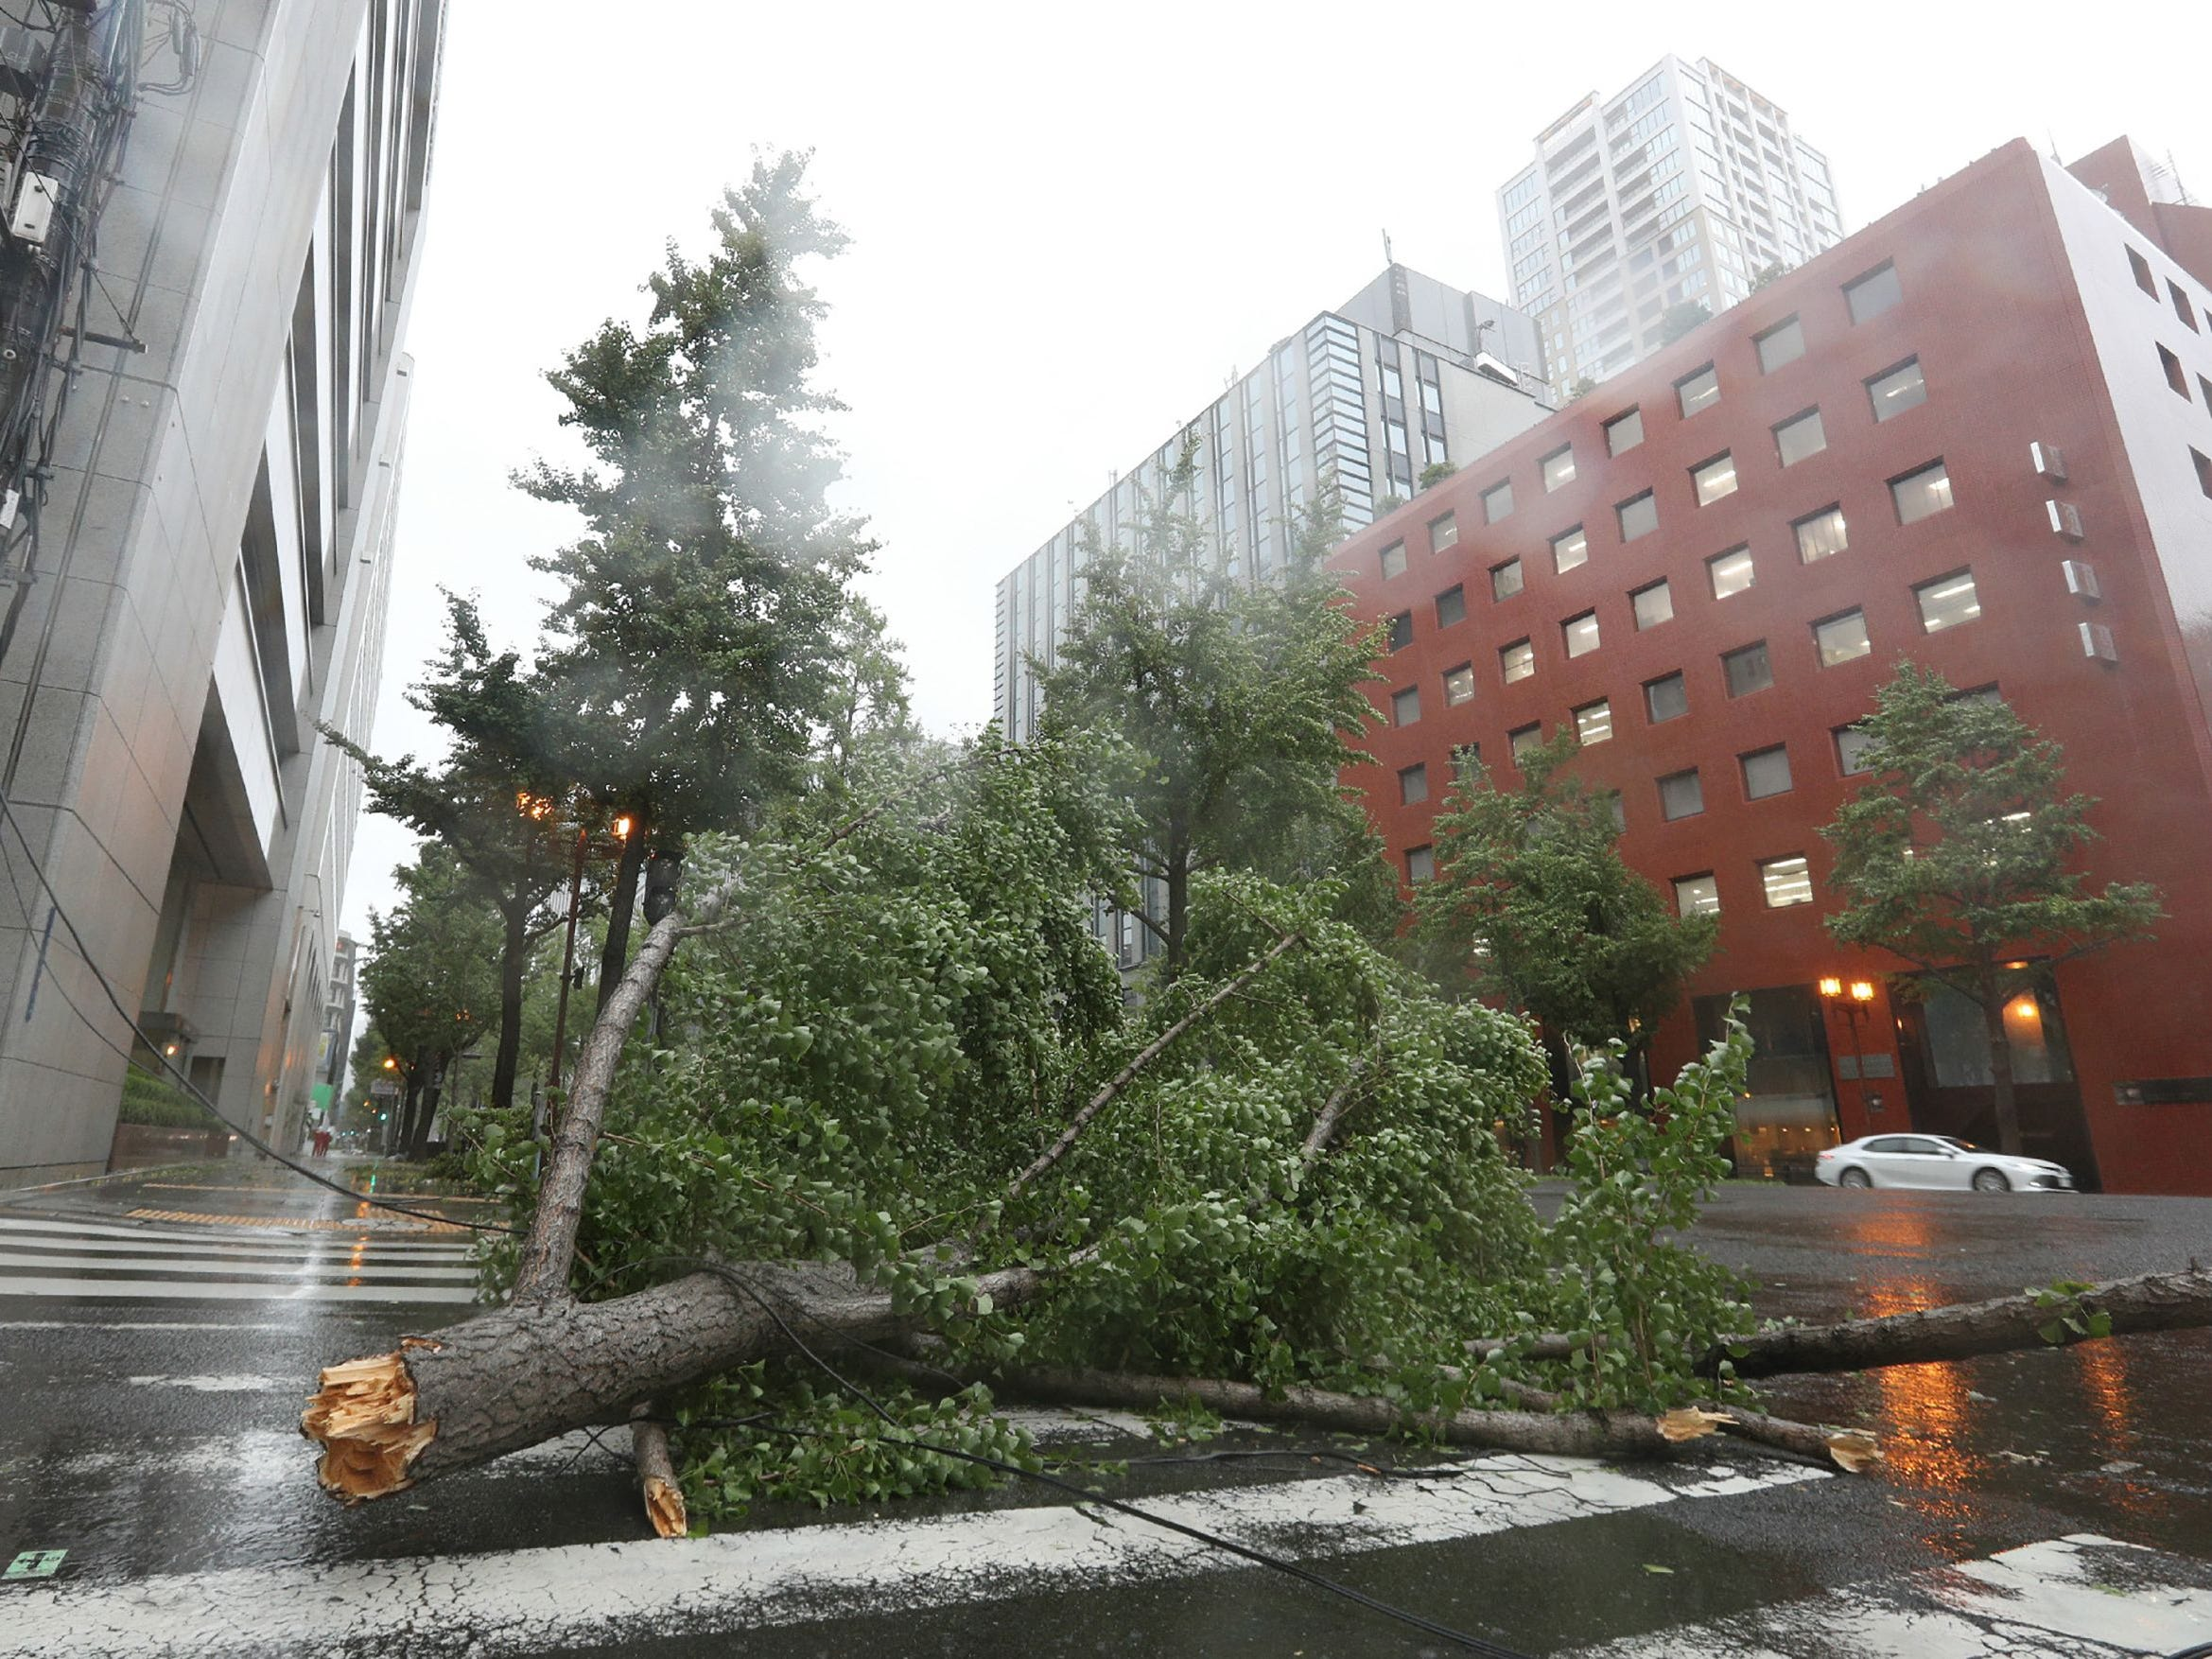 A fallen tree from strong winds lies on Midosuji street in central Osaka on September 4, 2018, as Typhoon Jebi made landfall around midday in southwestern Japan. - The strongest typhoon to hit Japan in 25 years made landfall on September 4, the country's weather agency said, bringing violent winds and heavy rainfall that prompted evacuation warnings. (Photo by JIJI PRESS / JIJI PRESS / AFP) / Japan OUTJIJI PRESS/AFP/Getty Images ORIG FILE ID: AFP_18U1S5